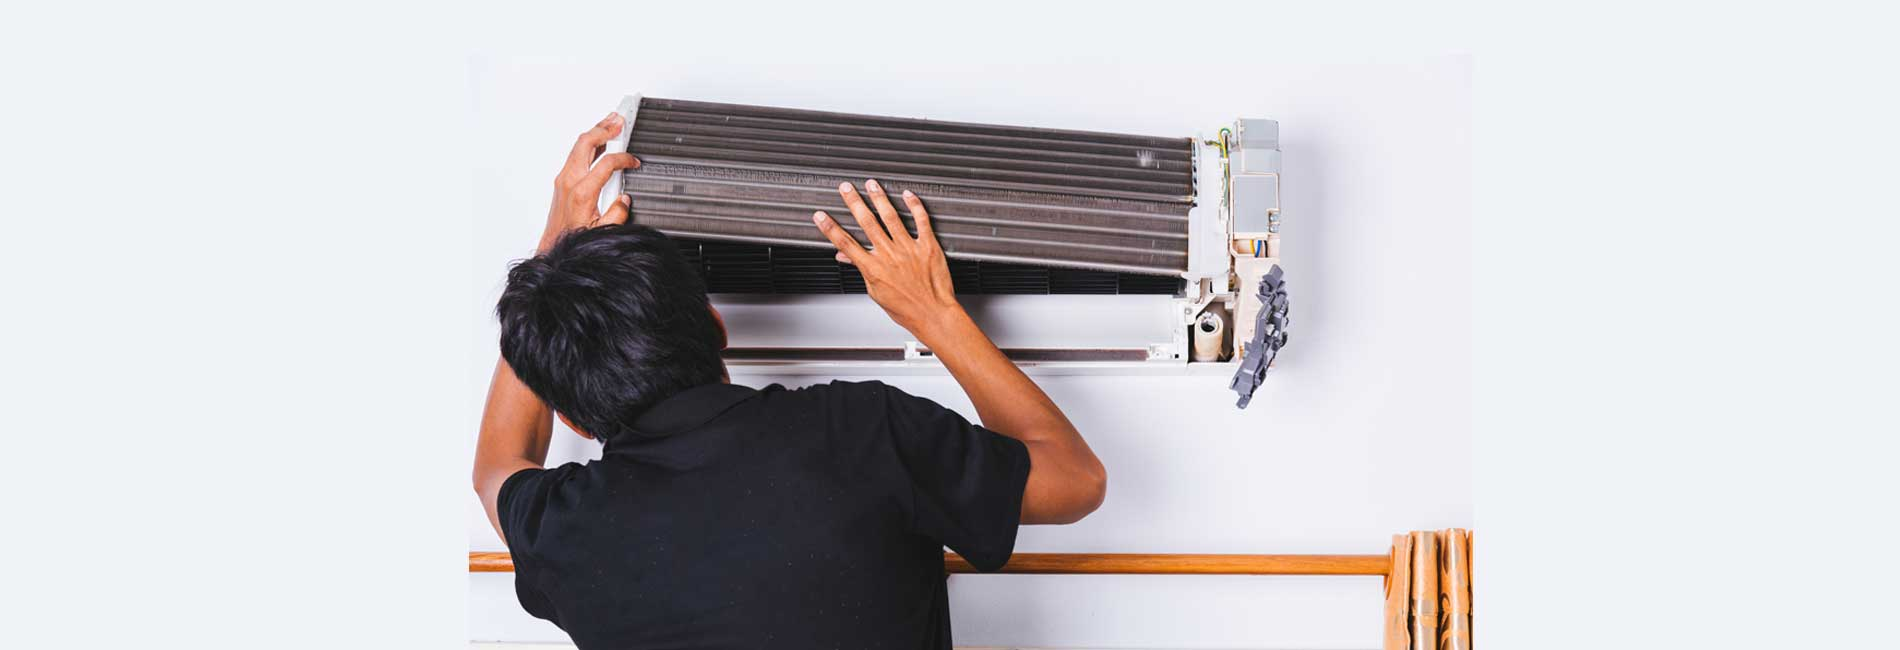 Panasonic Split AC Uninstallation in Besant Nagar